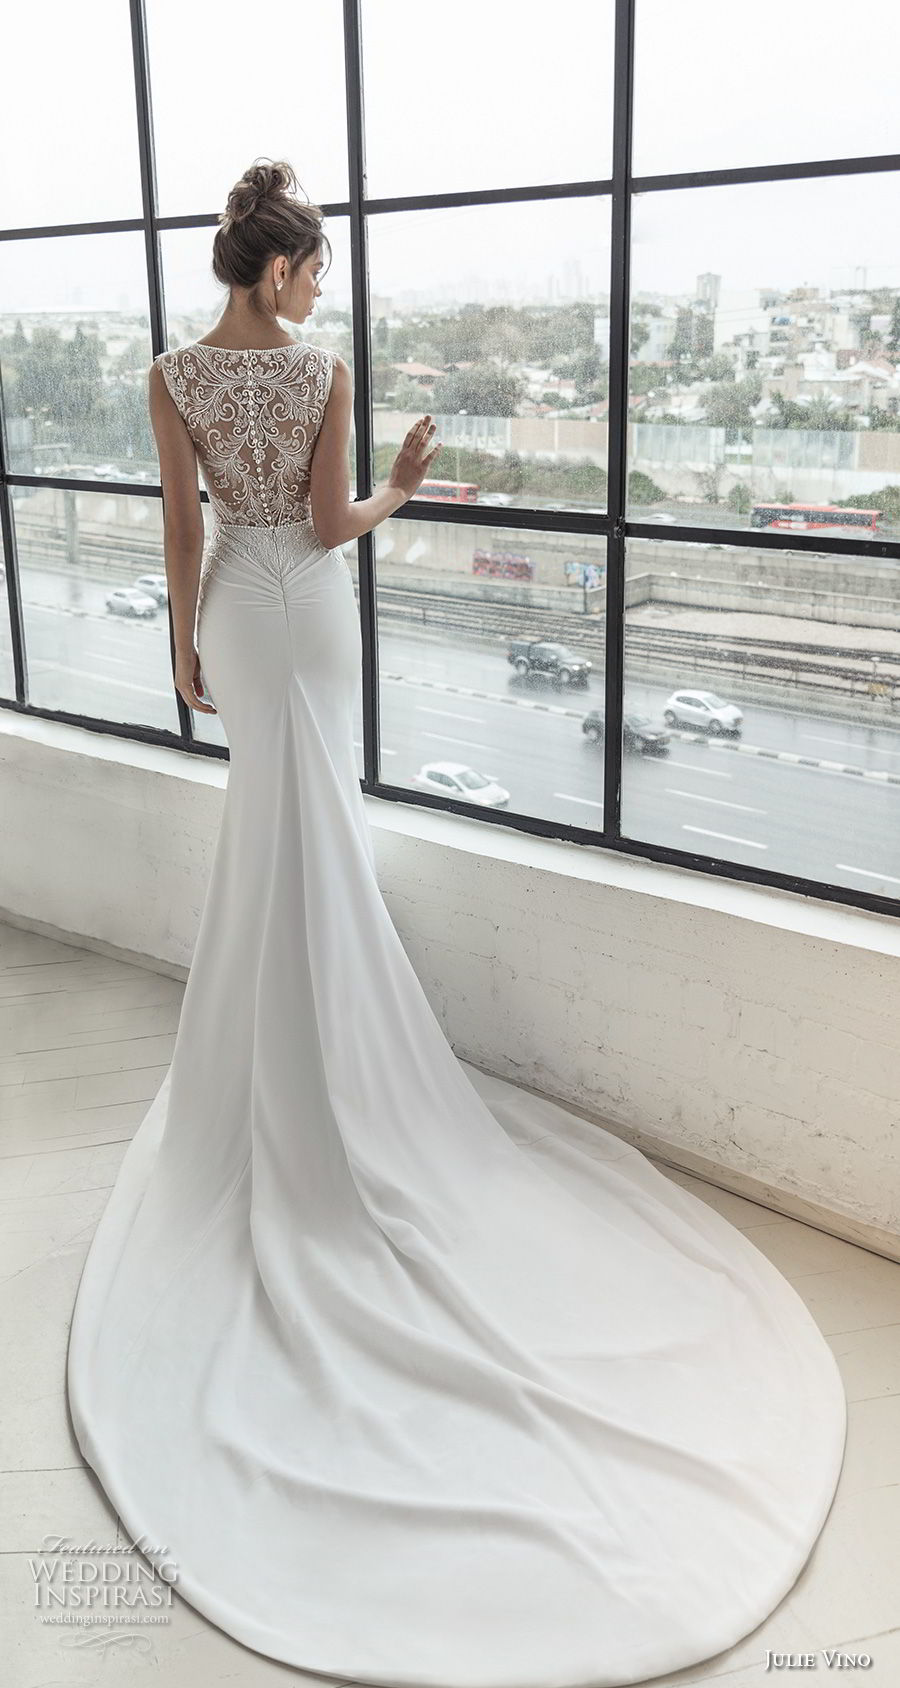 julie vino 2019 romanzo bridal sleeveless illusion bateau sweetheart neckline heavily embellished bodice elegan fit and flare wedding dress sheer lace chapel train (11) bv